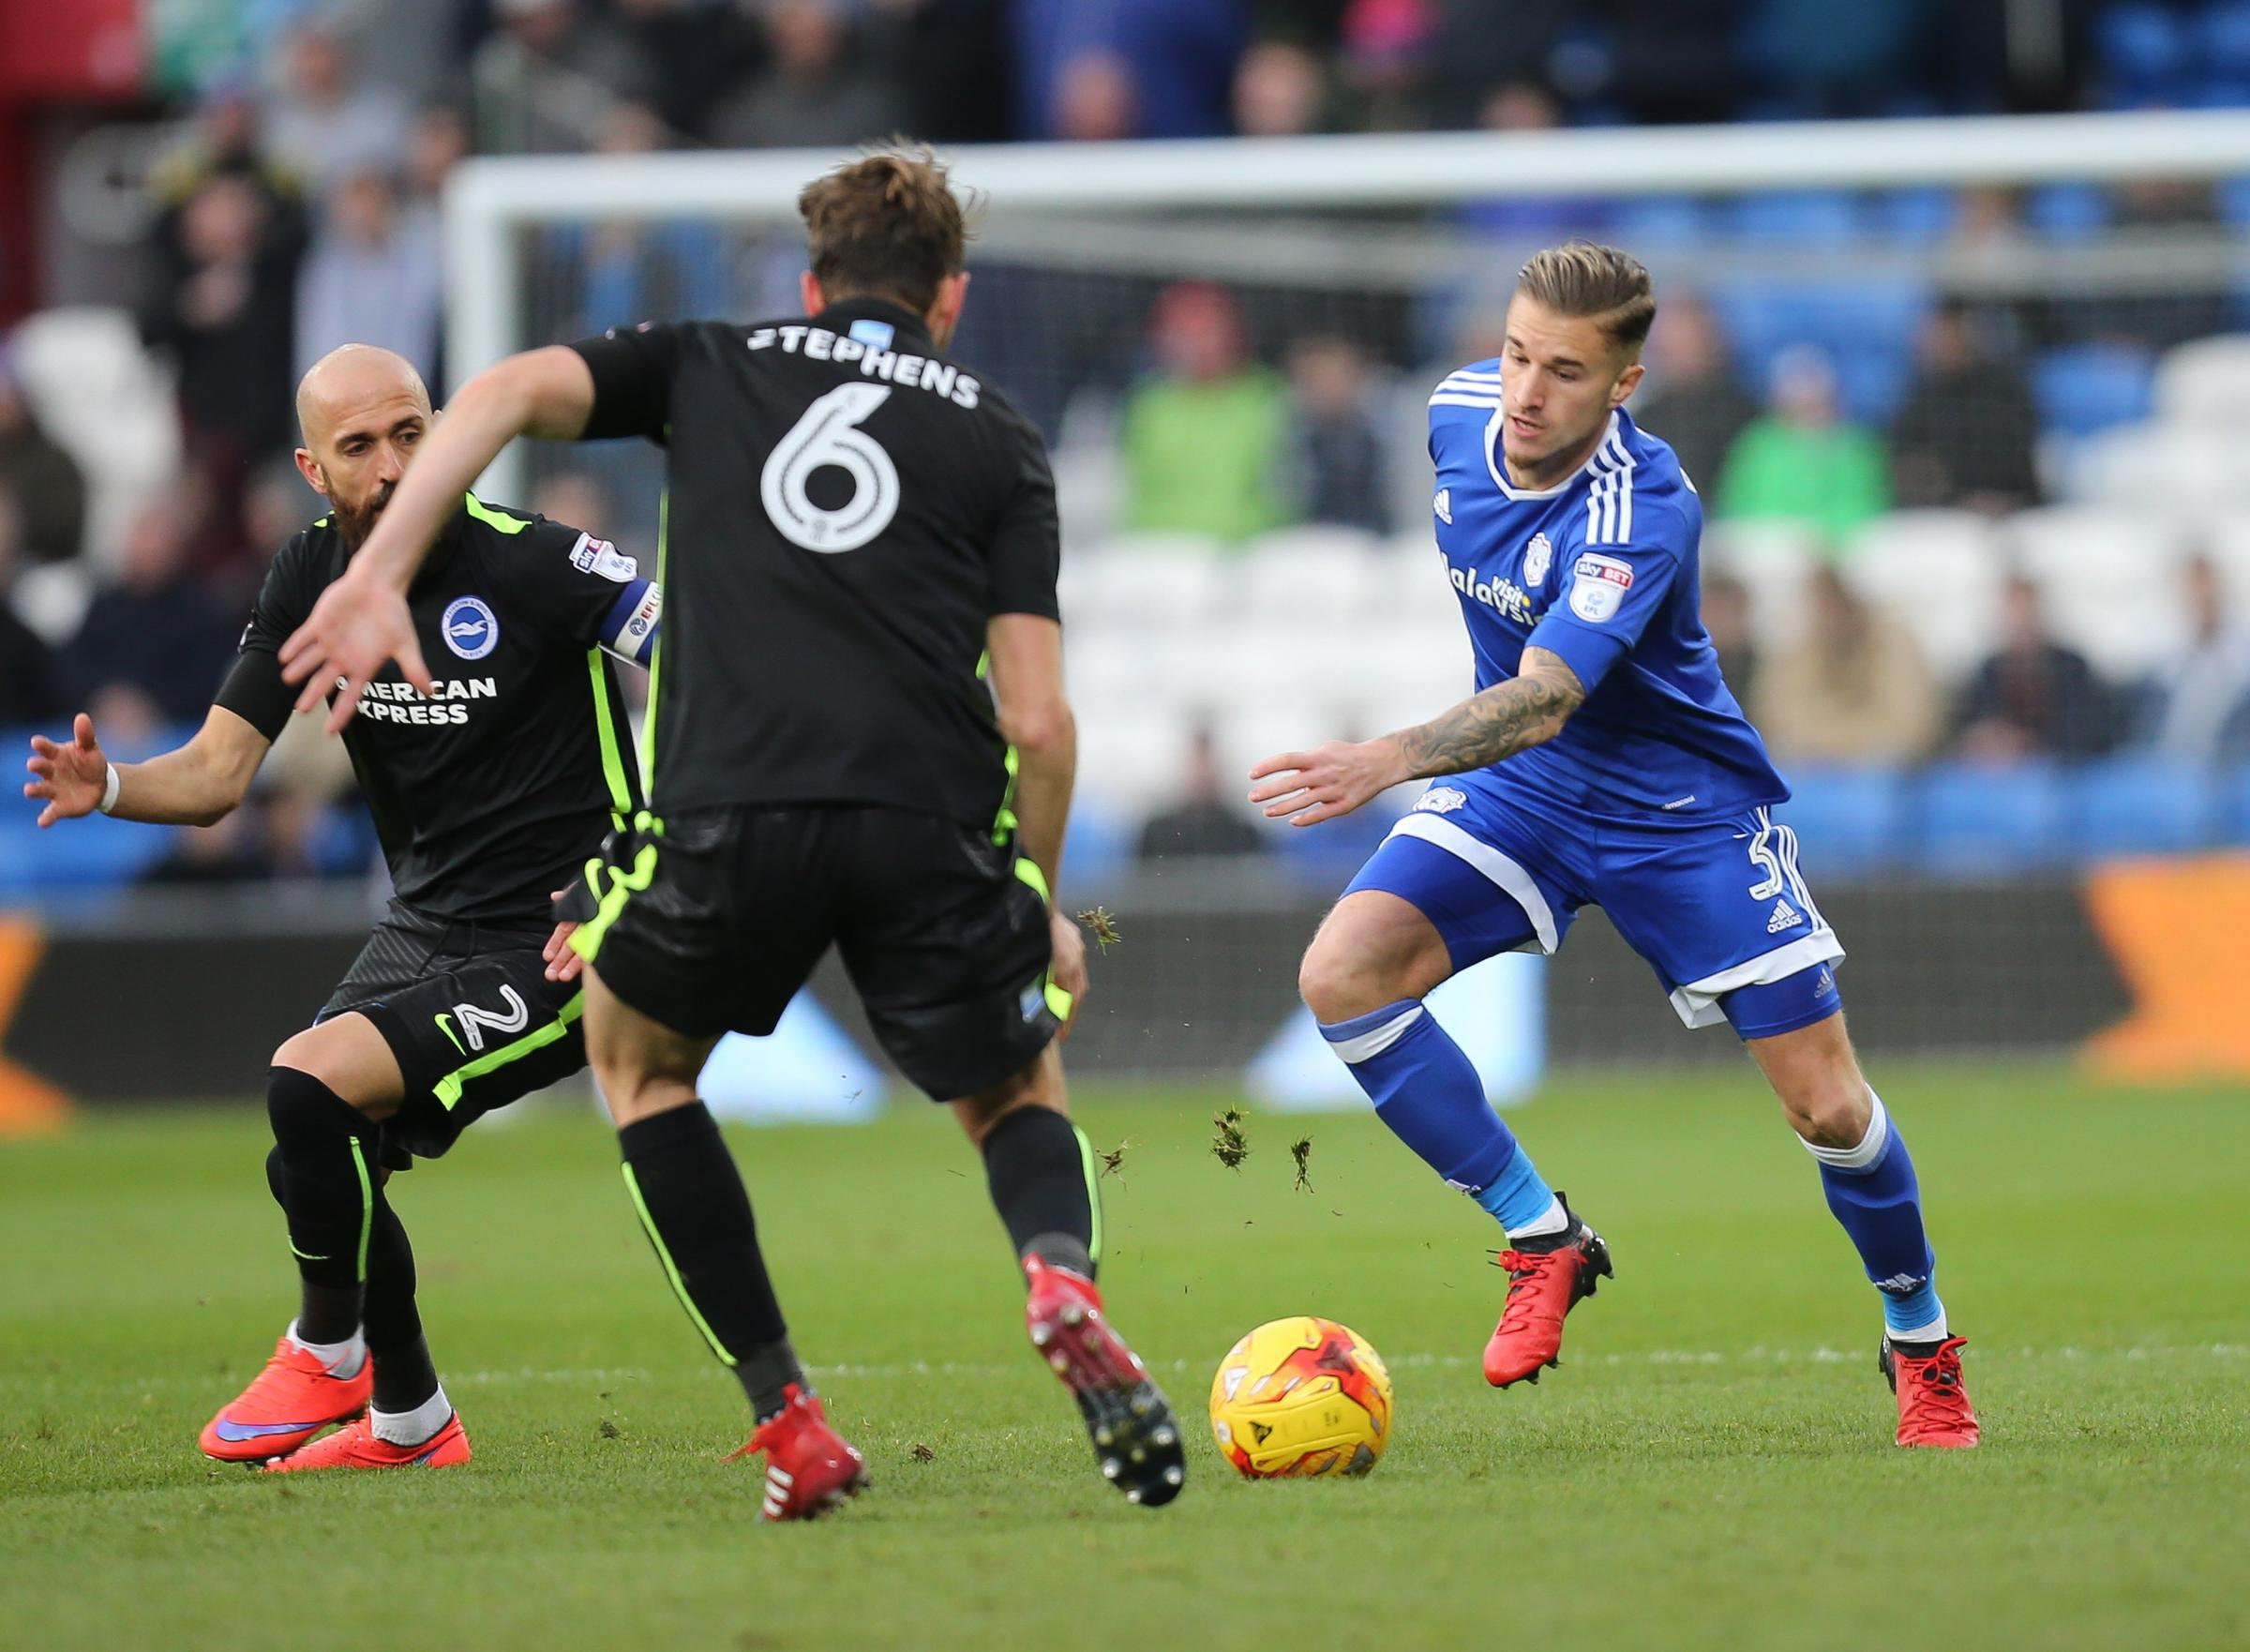 Joe Bennett in action against Albion in the Championship